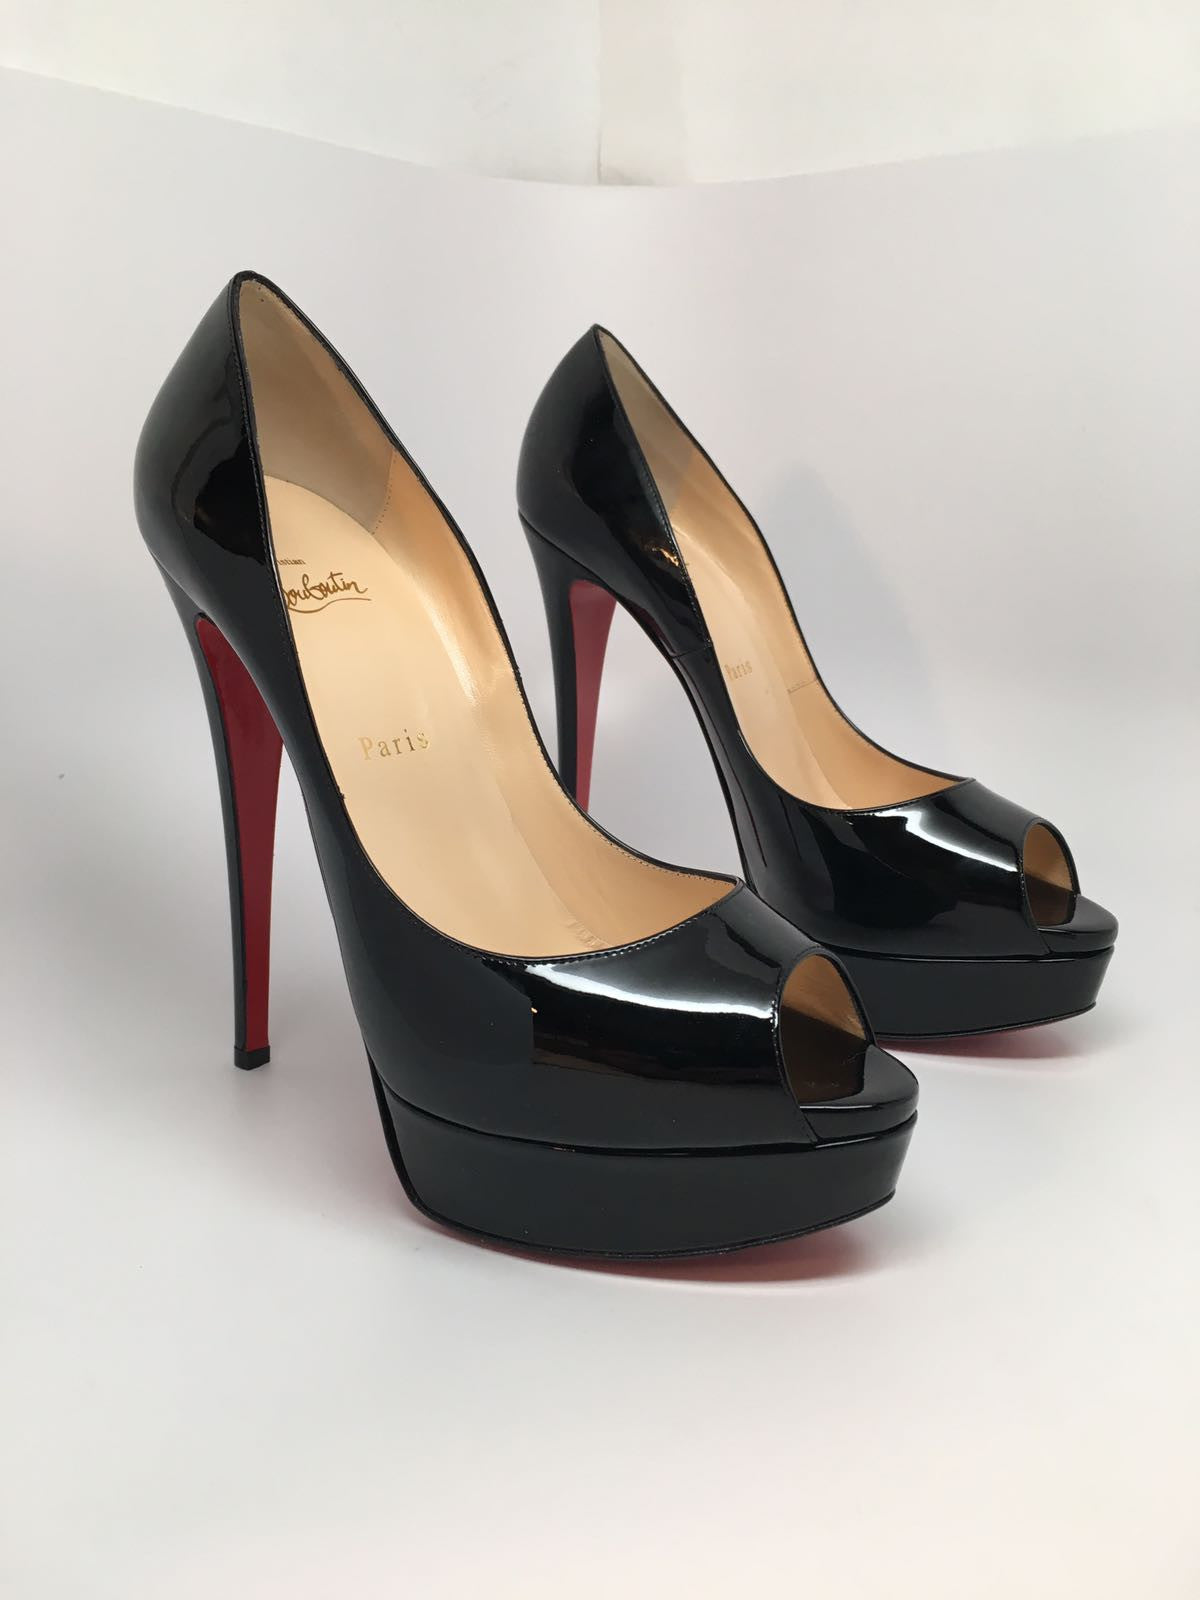 6e483fd81aef CHRISTIAN LOUBOUTIN LADY PEEP 150 PATENT CALF - SIZE 40 – Hebster Boutique